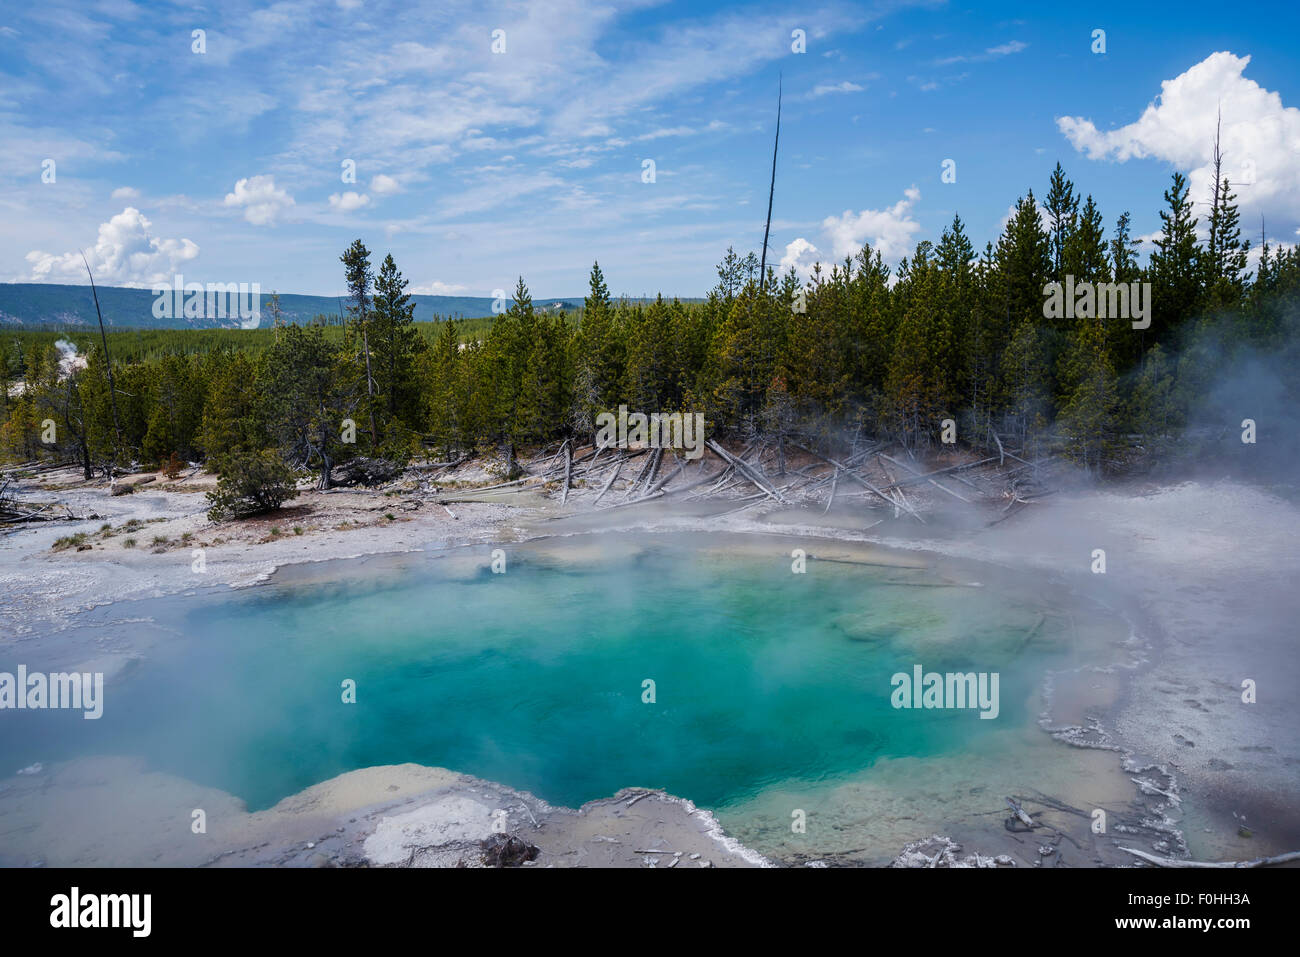 Emerald Spring is a hot spring located in Norris Geyser Basin of Yellowstone National Park, Wyoming, USA. - Stock Image